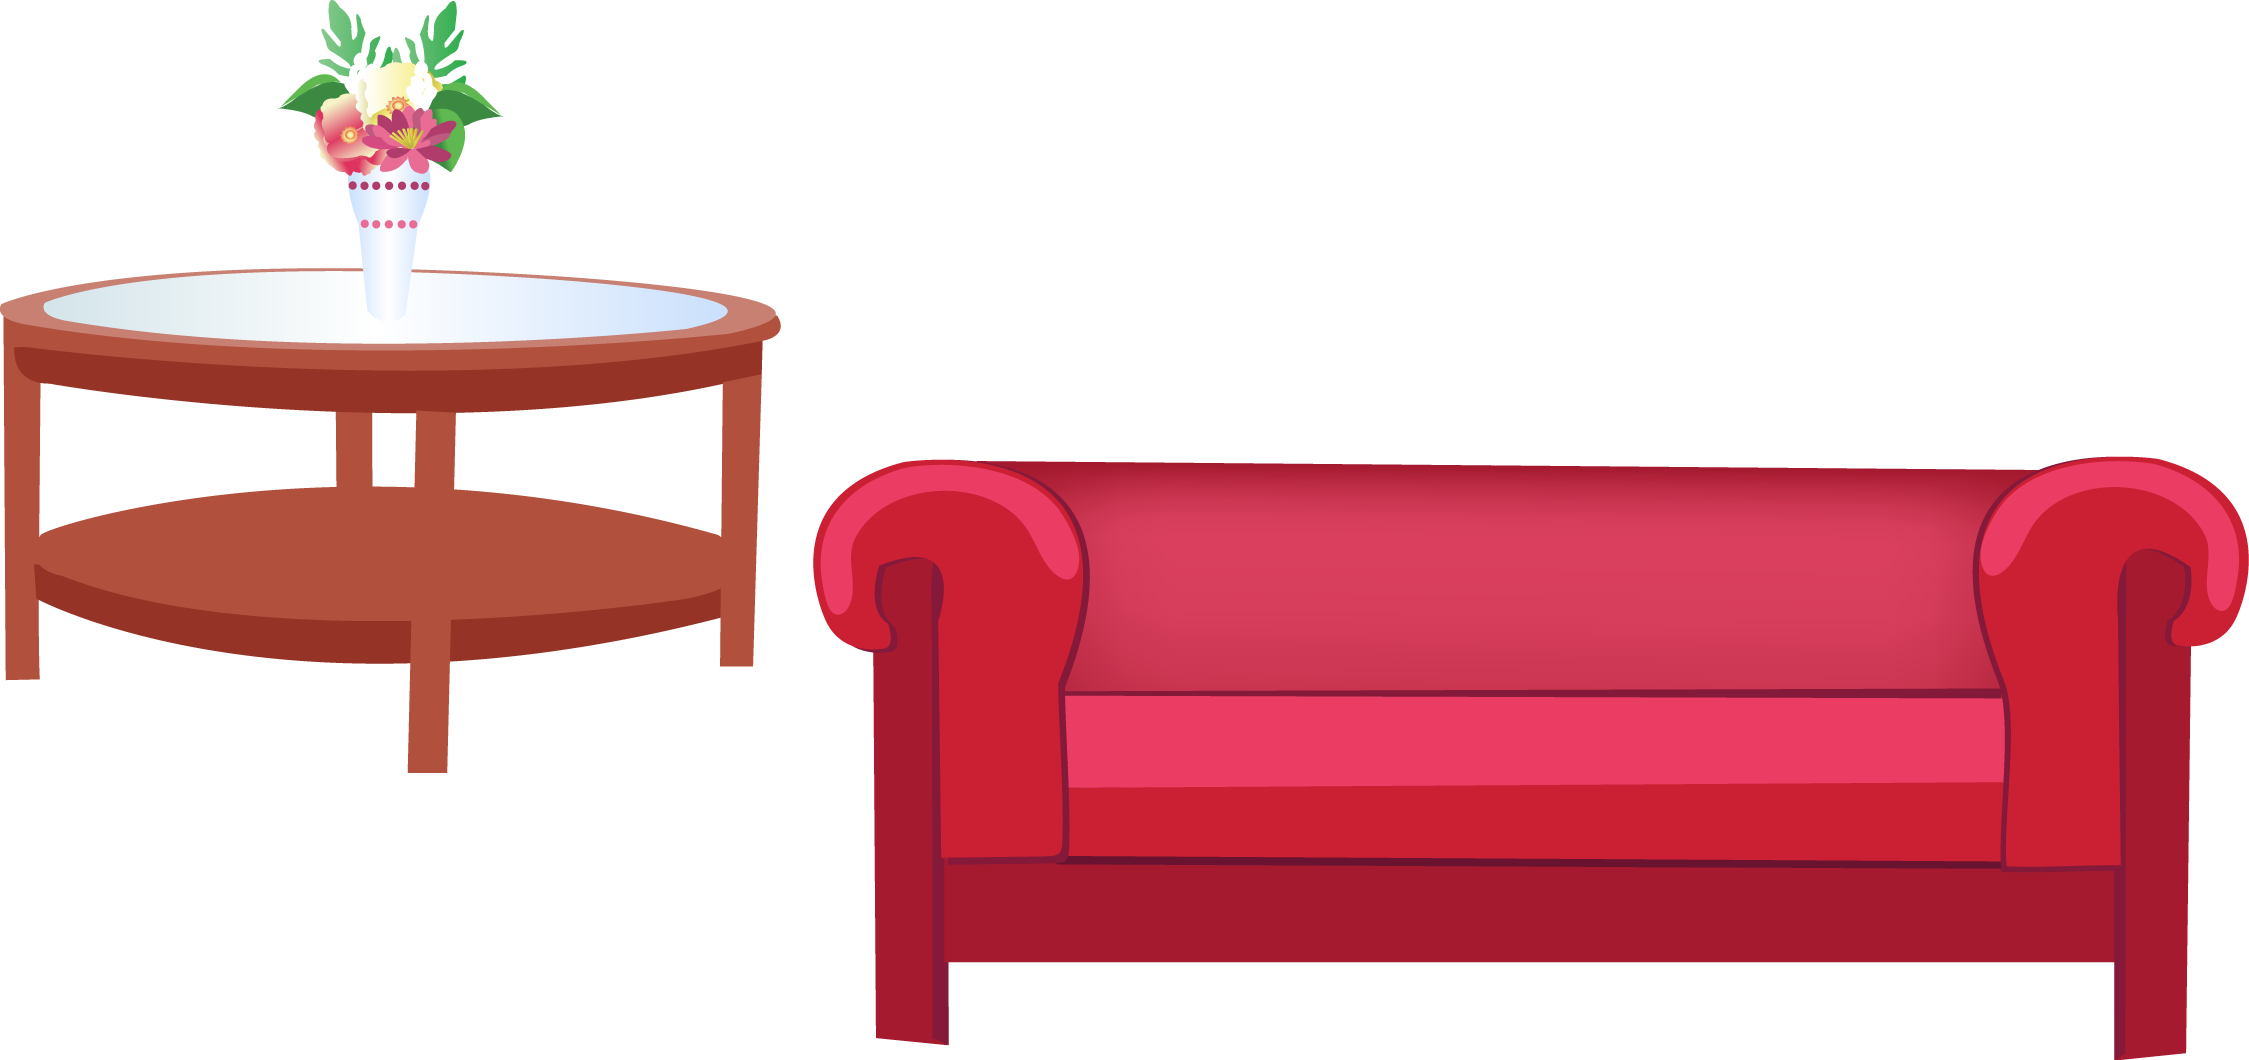 Bedroom living room couch. Furniture clipart bed